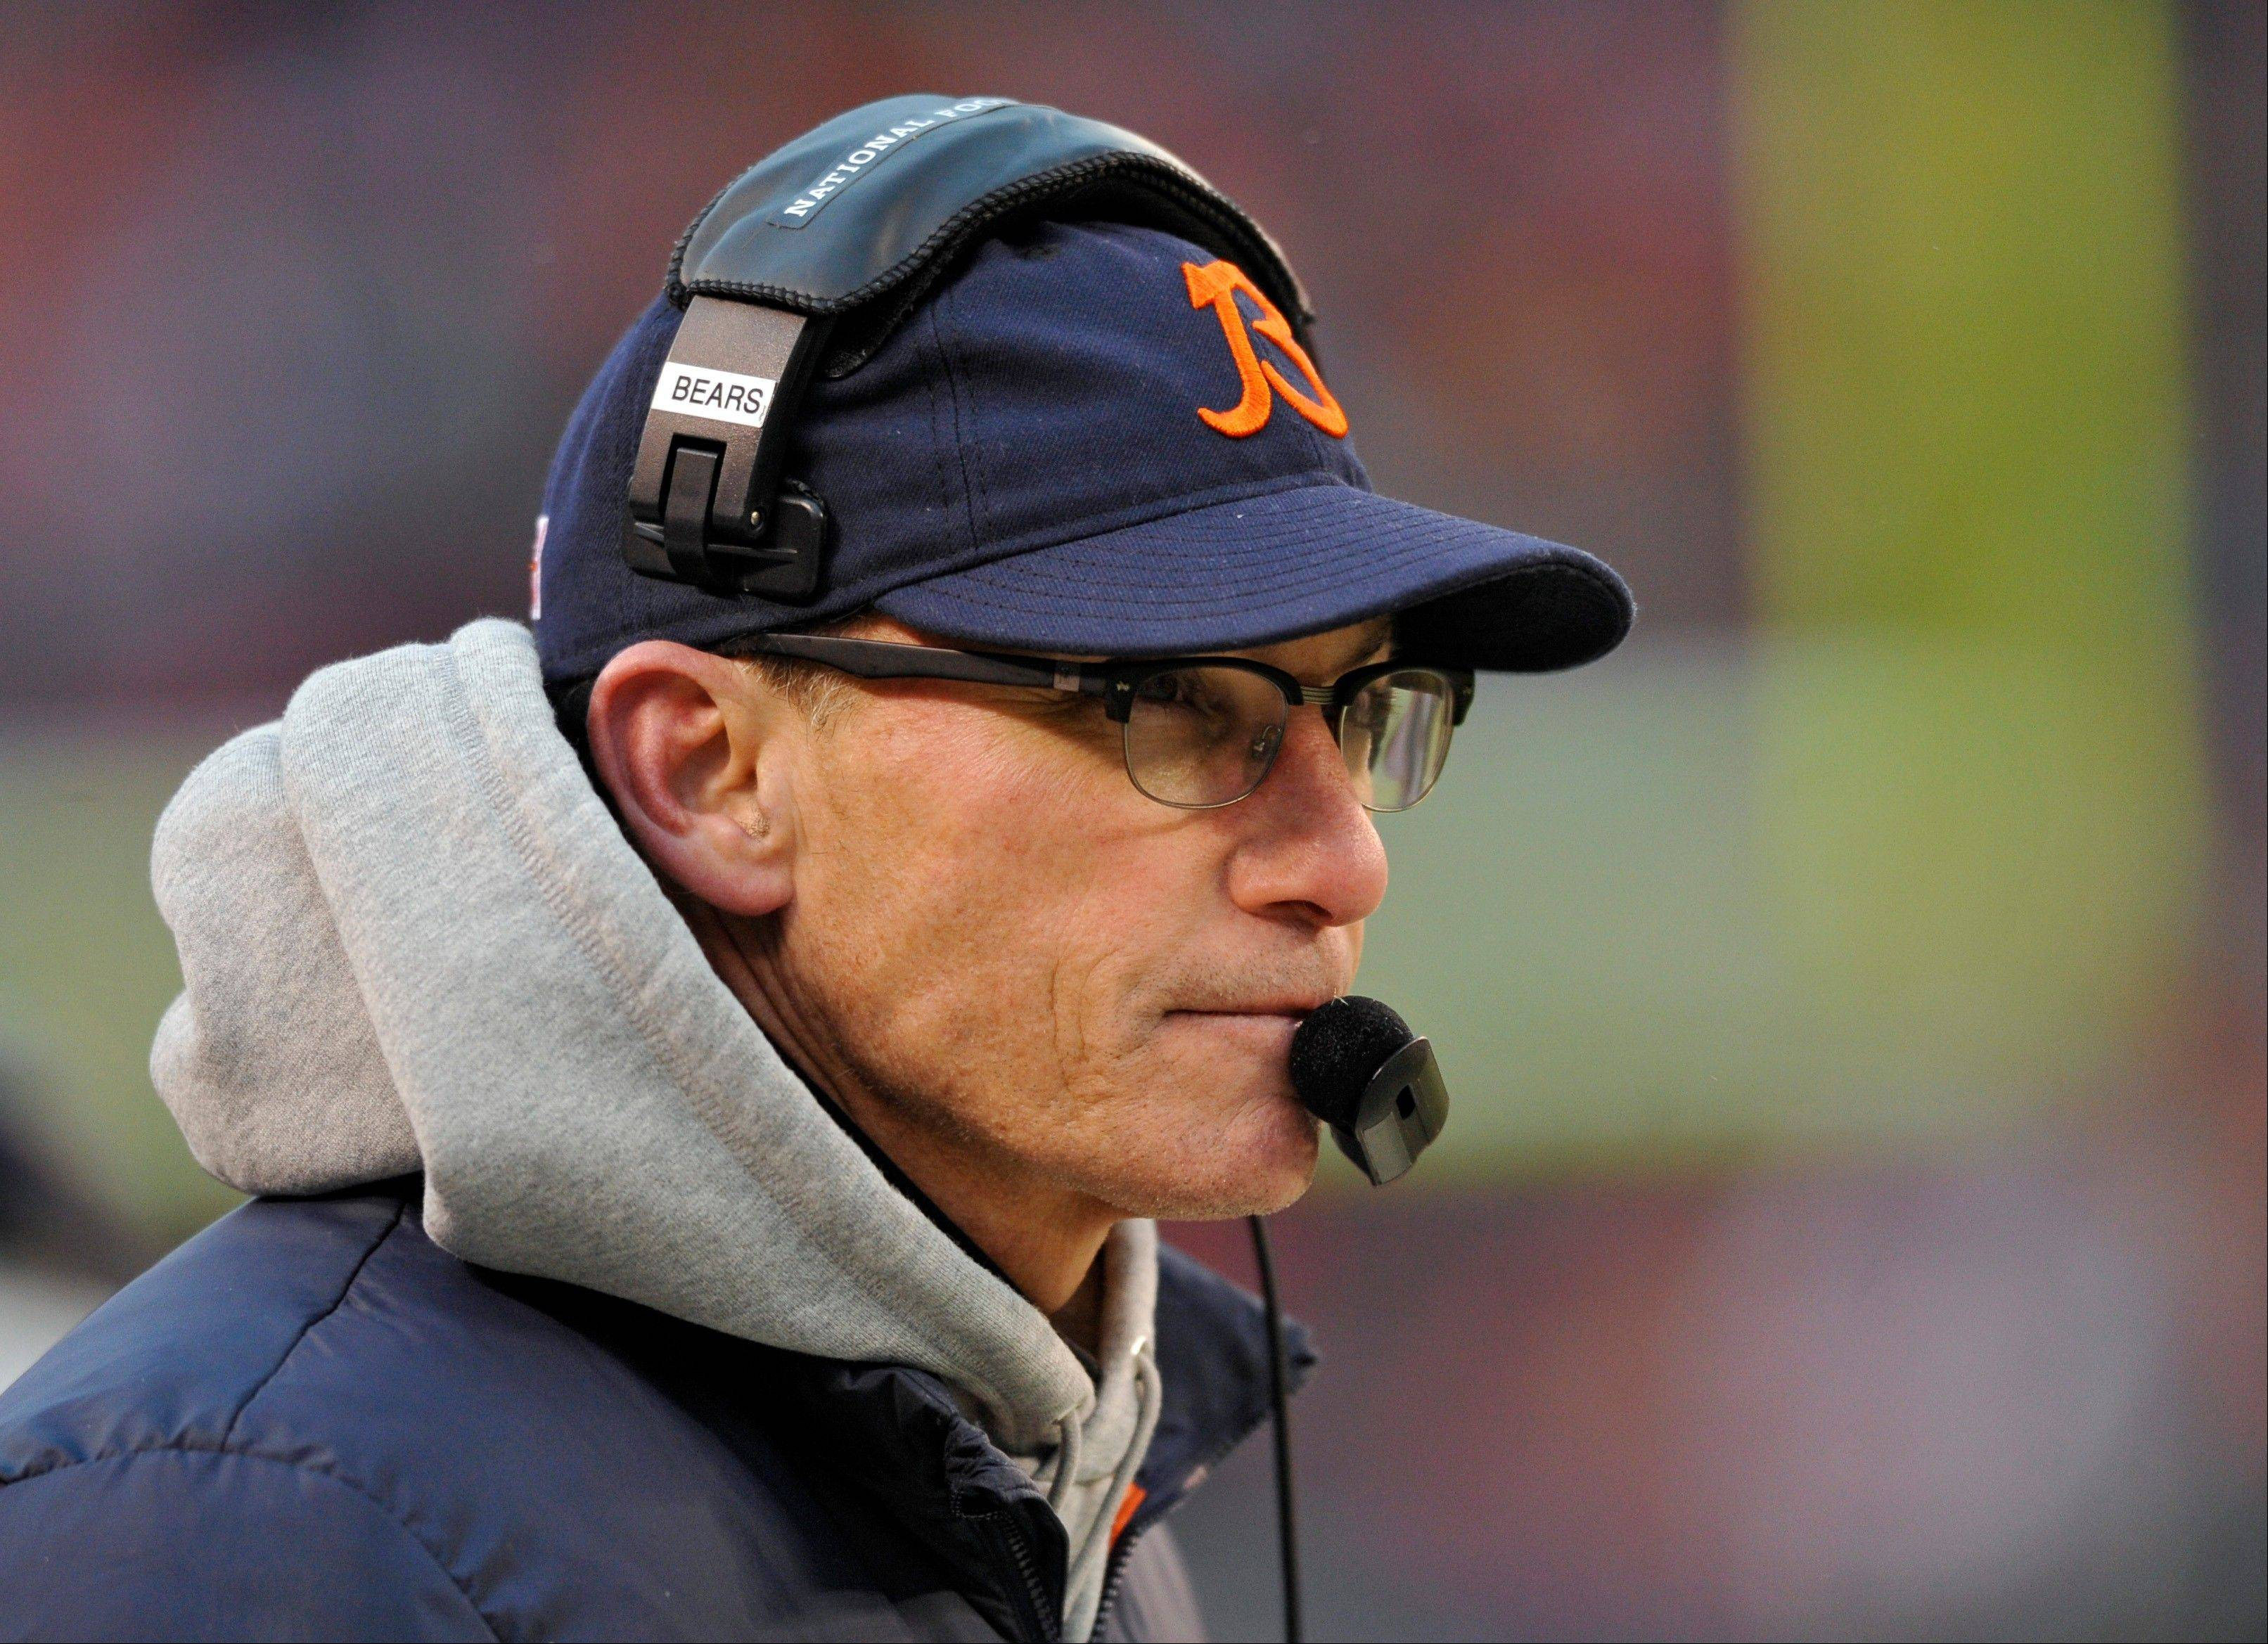 Bears head coach Marc Trestman liked what he saw from quarterback Jay Cutler well before the season even started.